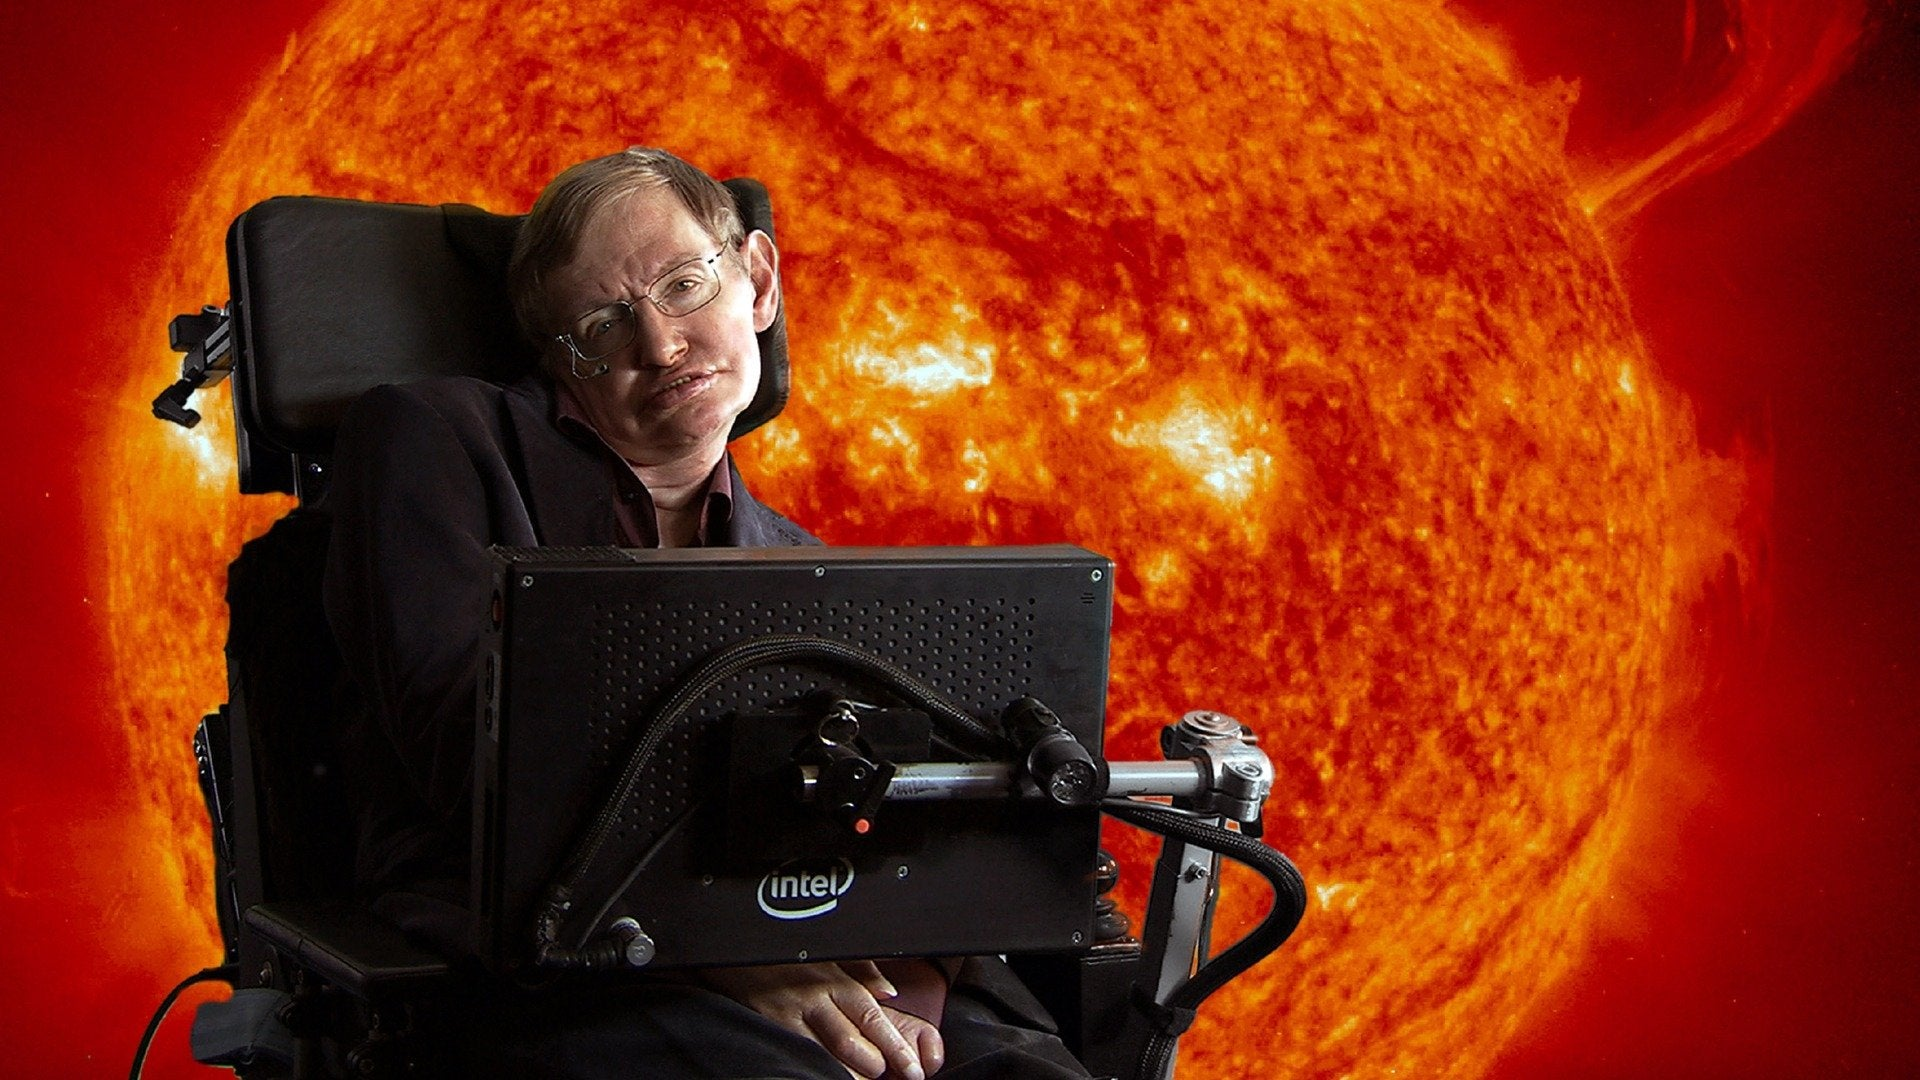 Stephen Hawking Presents: Into the Universe